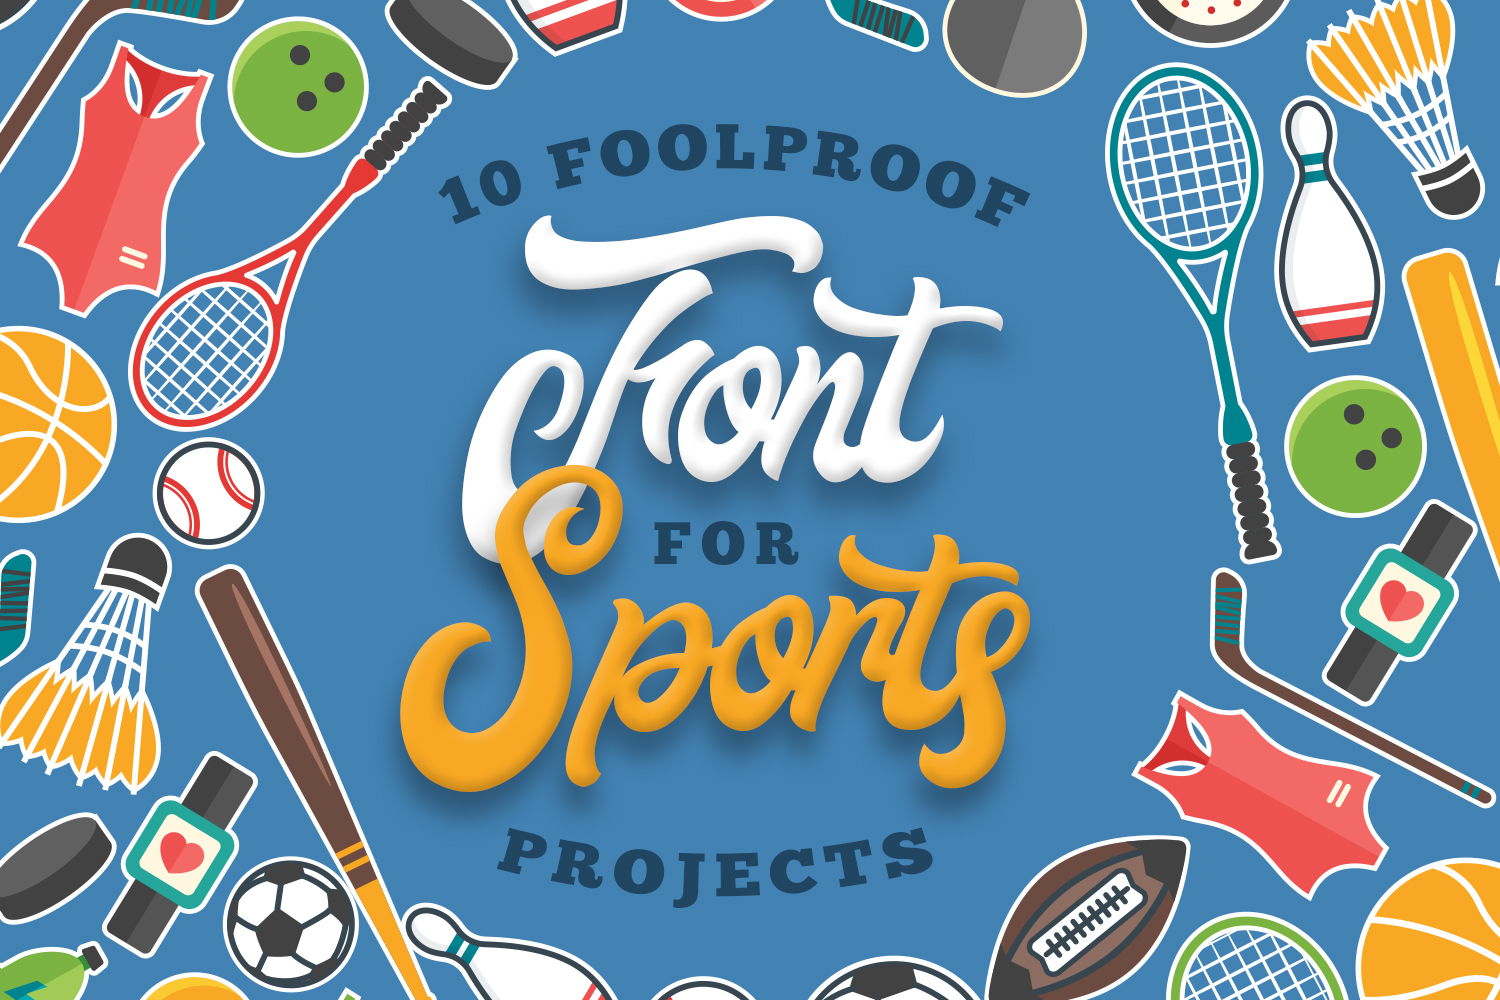 10 Foolproof Fonts for Sports Projects